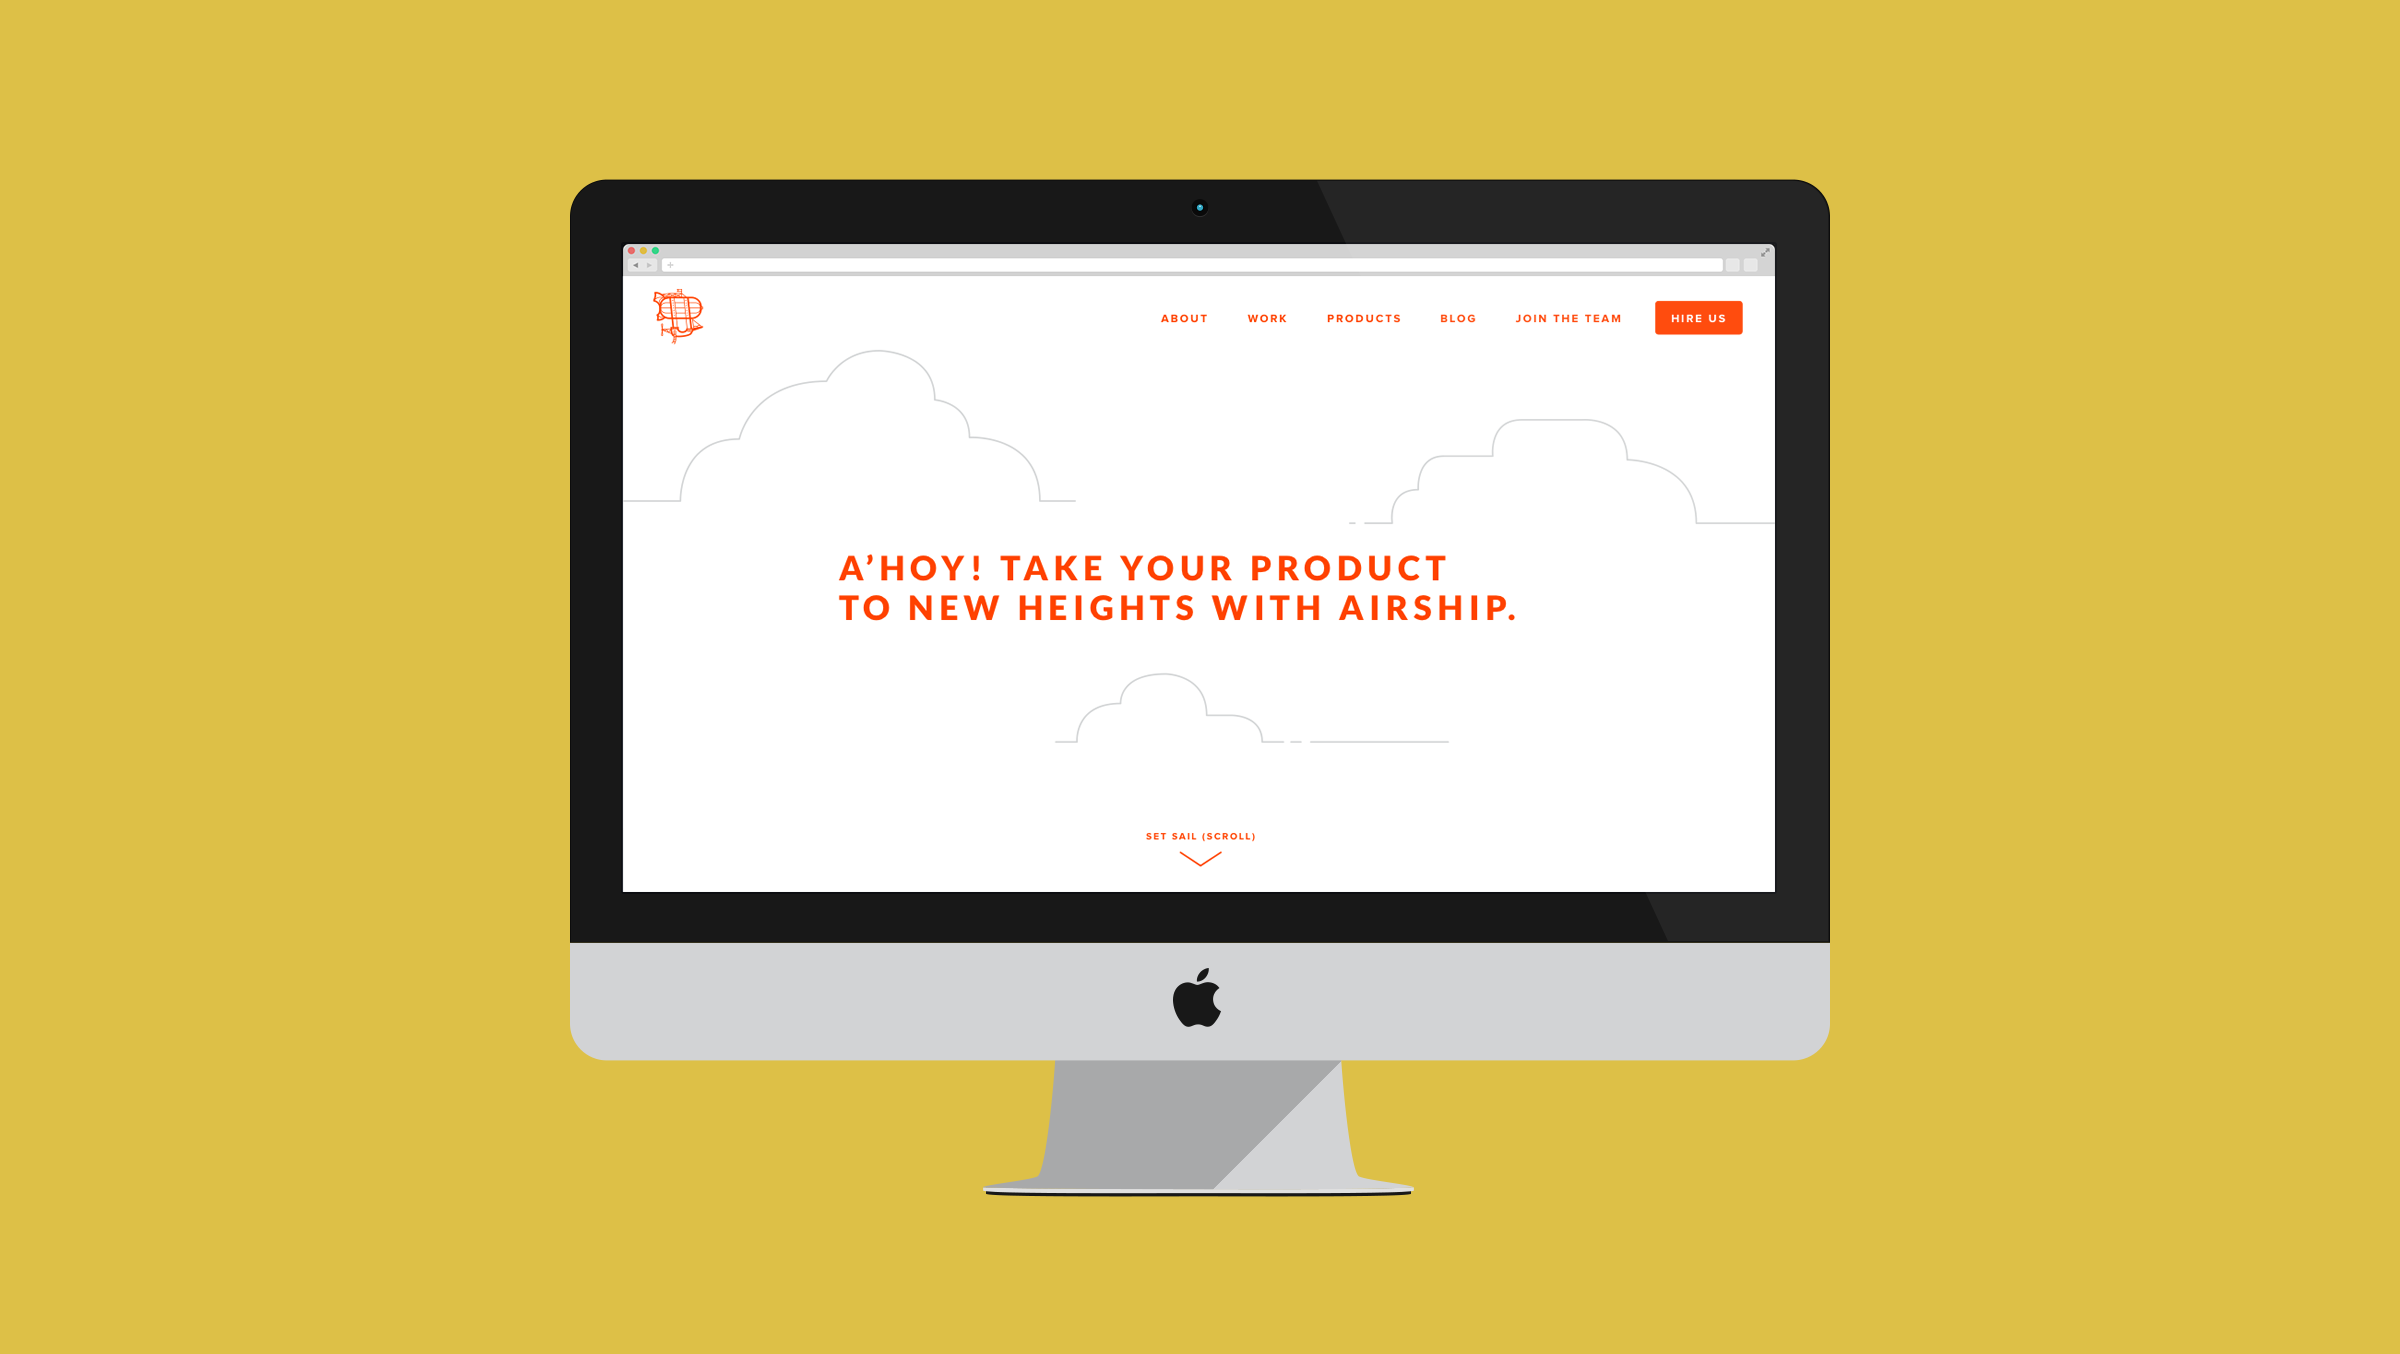 iMac featuring the home page of Team Airship